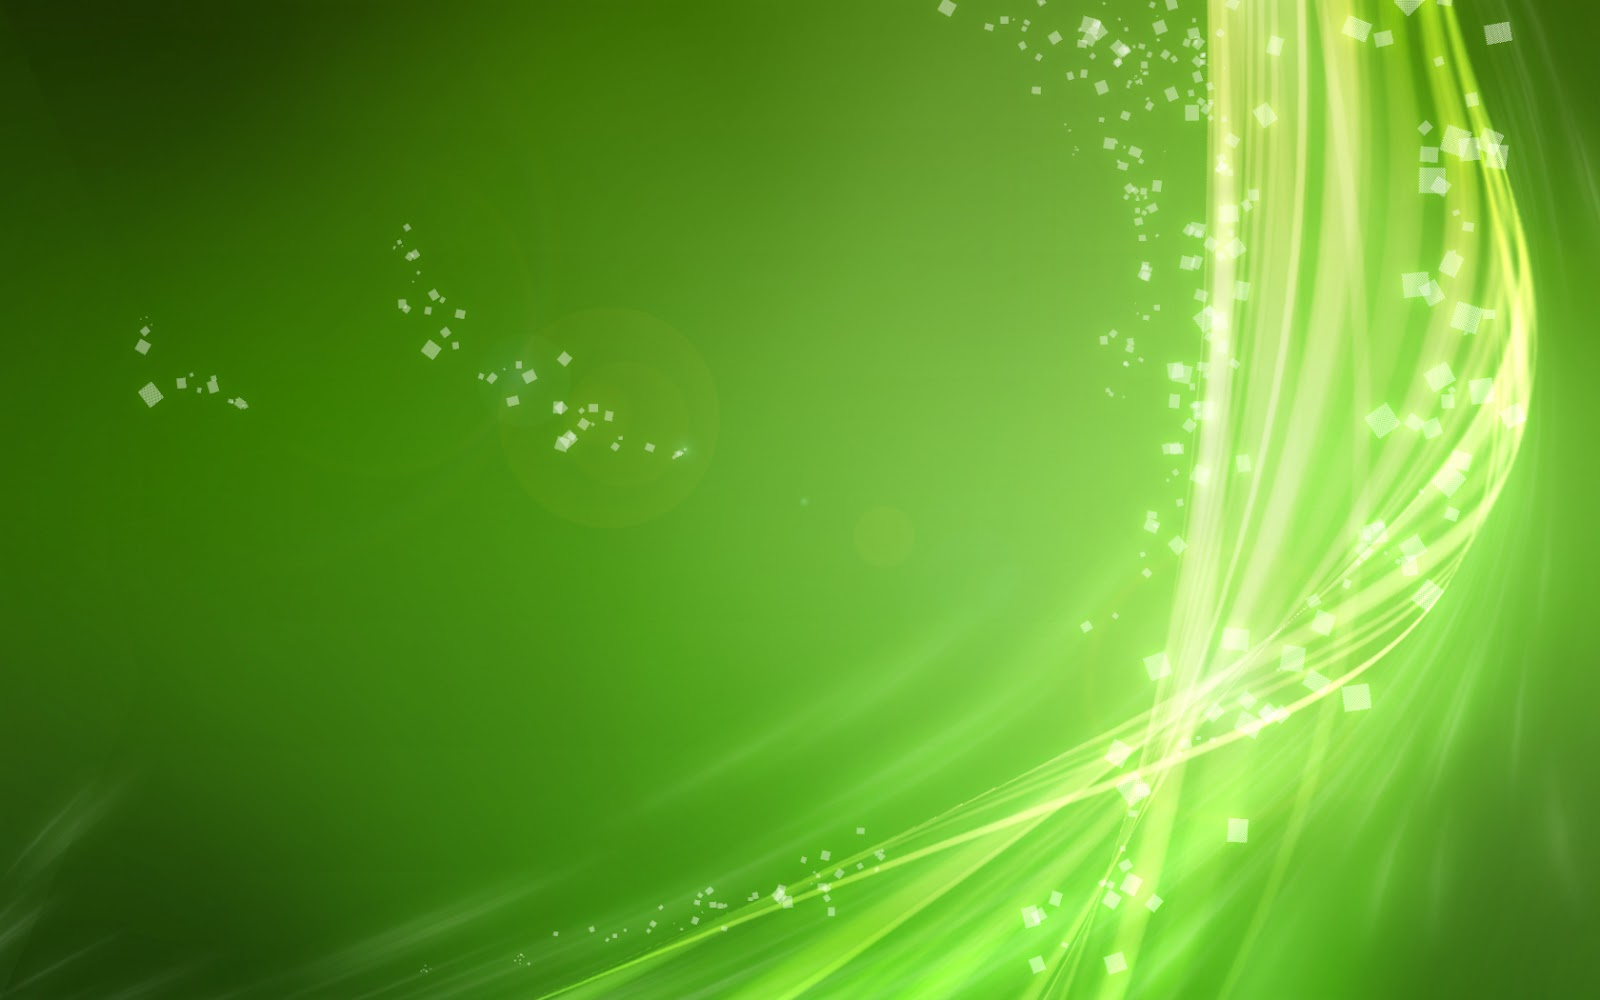 abstract-green-wallpaper-desktop